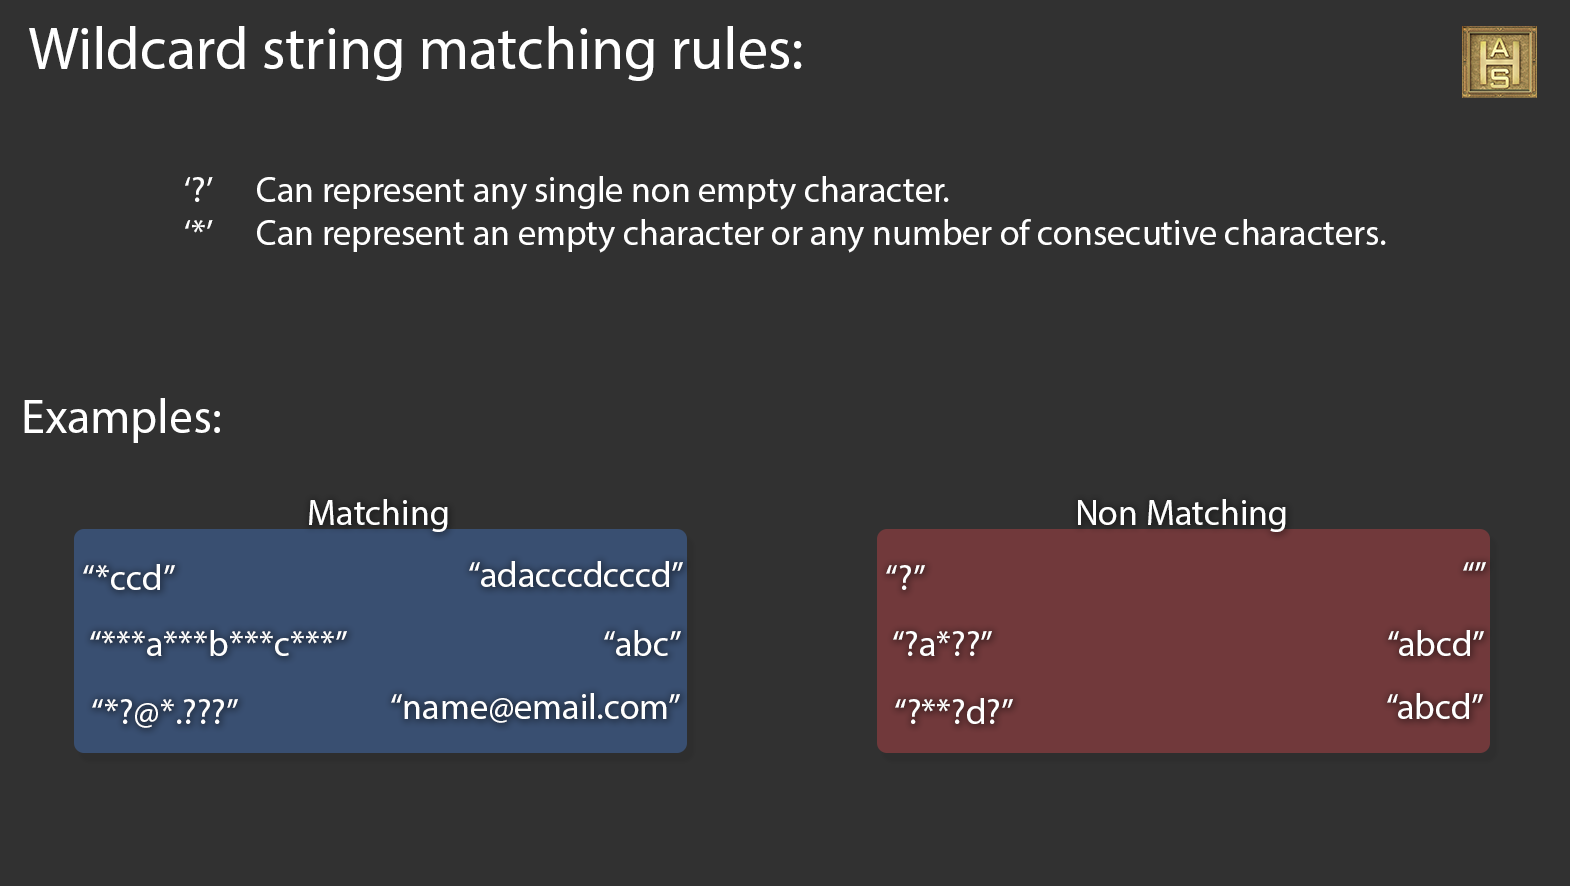 Rules for Wildcar Matching